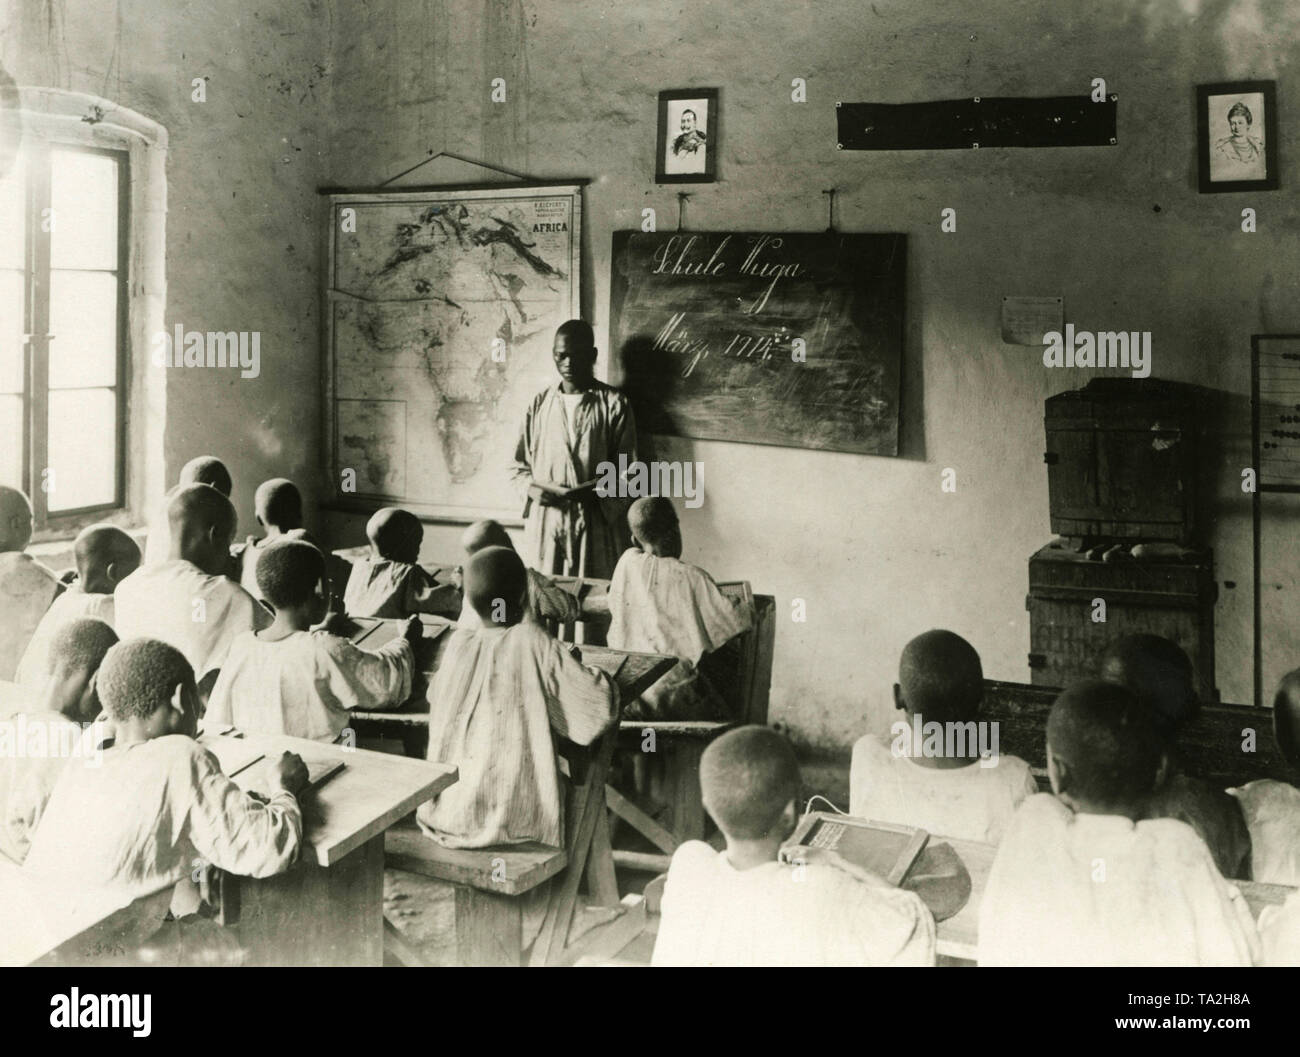 A black teacher in front of pupils in a classroom of the Evangelical mission station Wuga in Usambara in March 1914. On the wall are portraits of Emperor Wilhelm II and Empress Augusta Victoria. - Stock Image